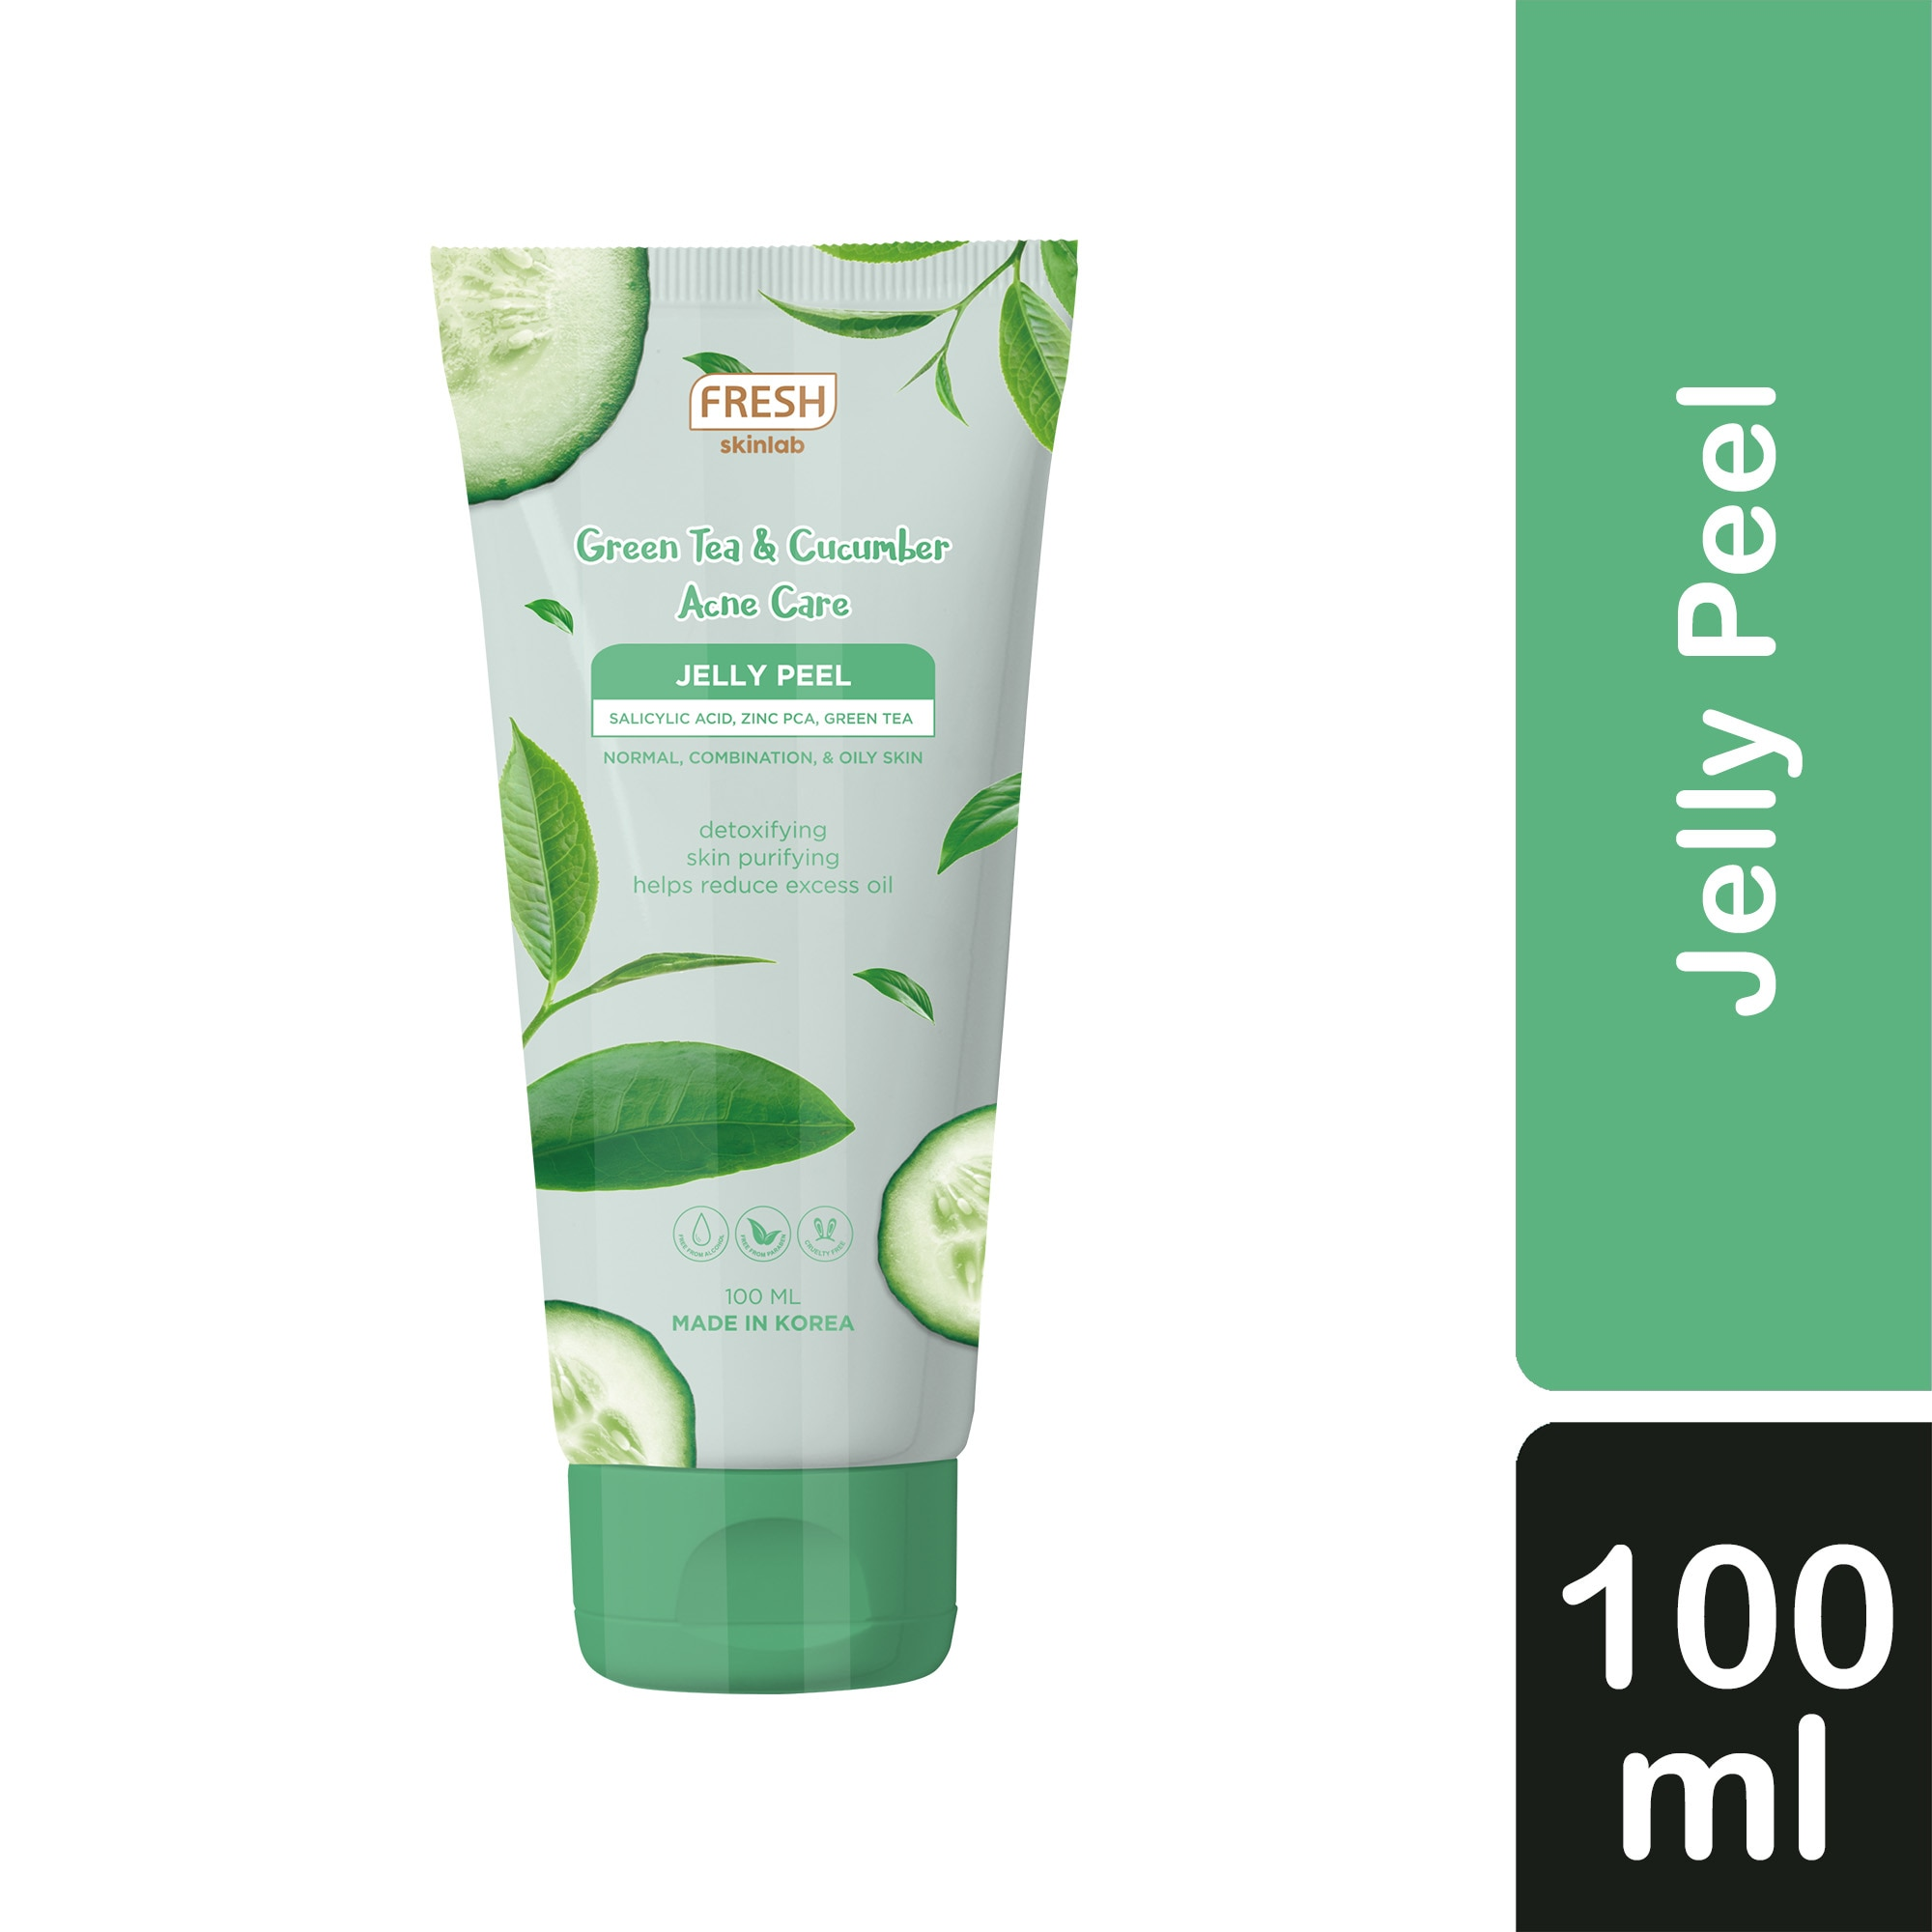 Skinlab Green Tea and Cucumber Acne Care Jelly Peel 100ml